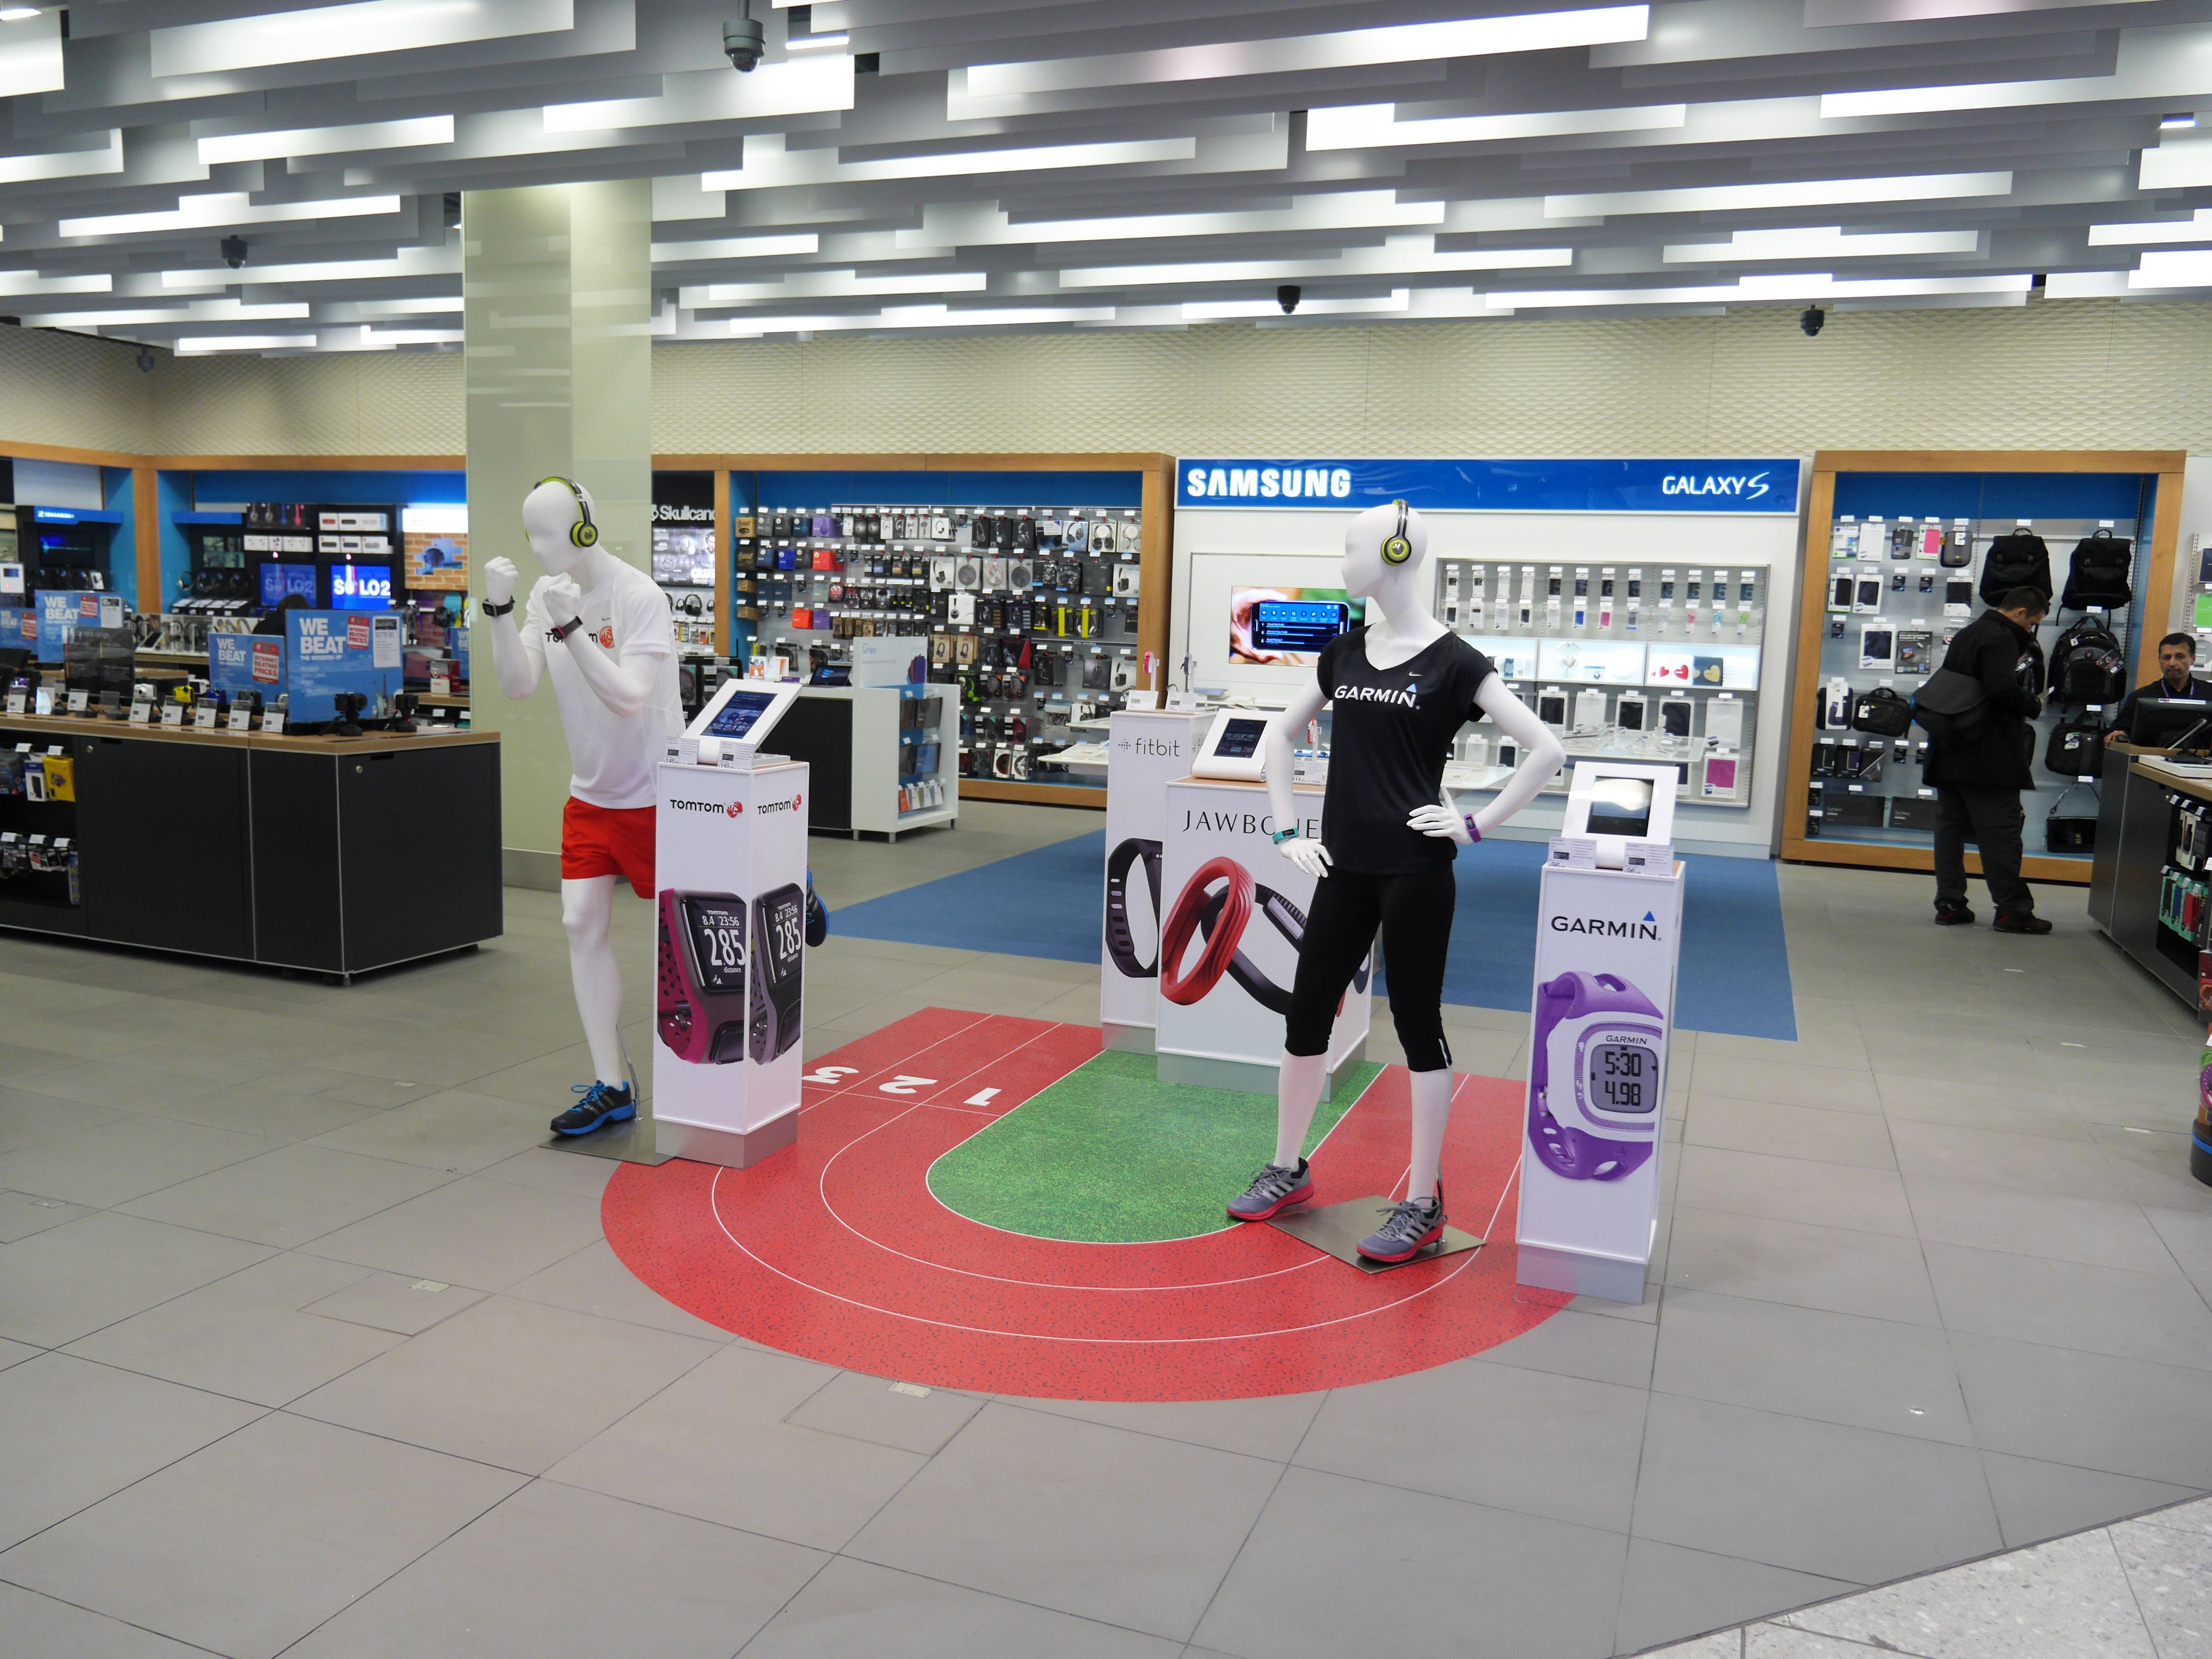 An image from our brand new Dixons Travel store in Heathrow